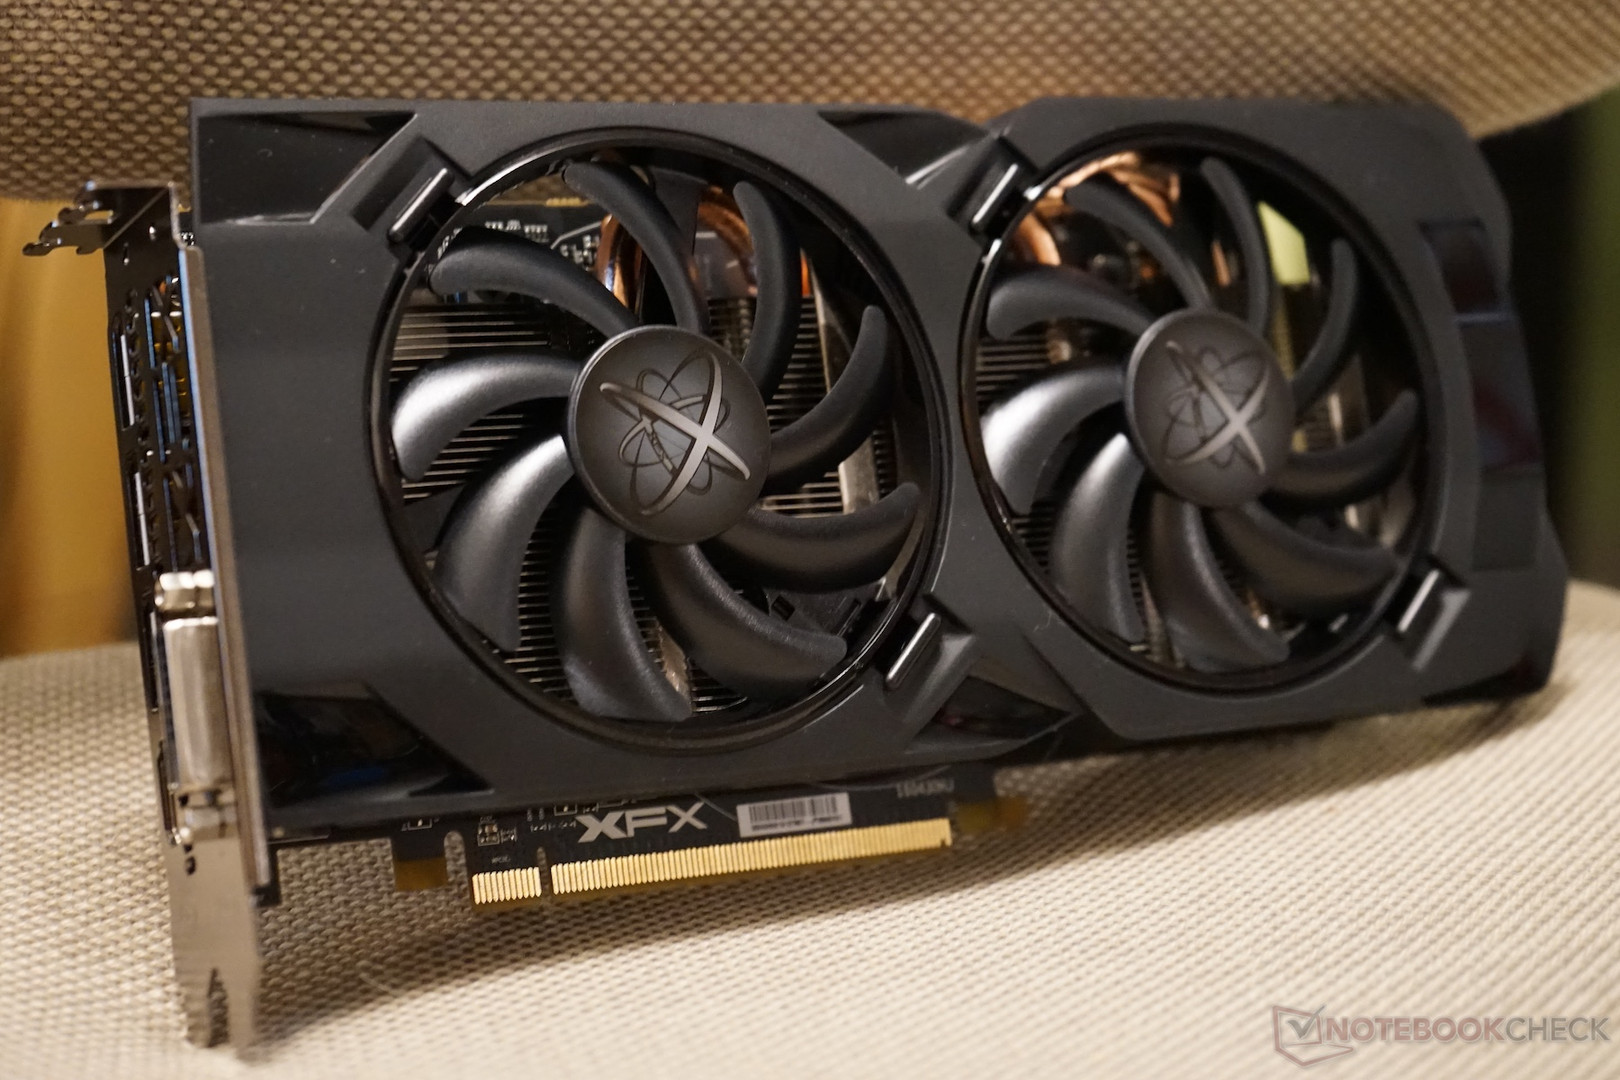 XFX Radeon RX 460 4 GB Double Dissipation (RX-460P4DFG5) Review